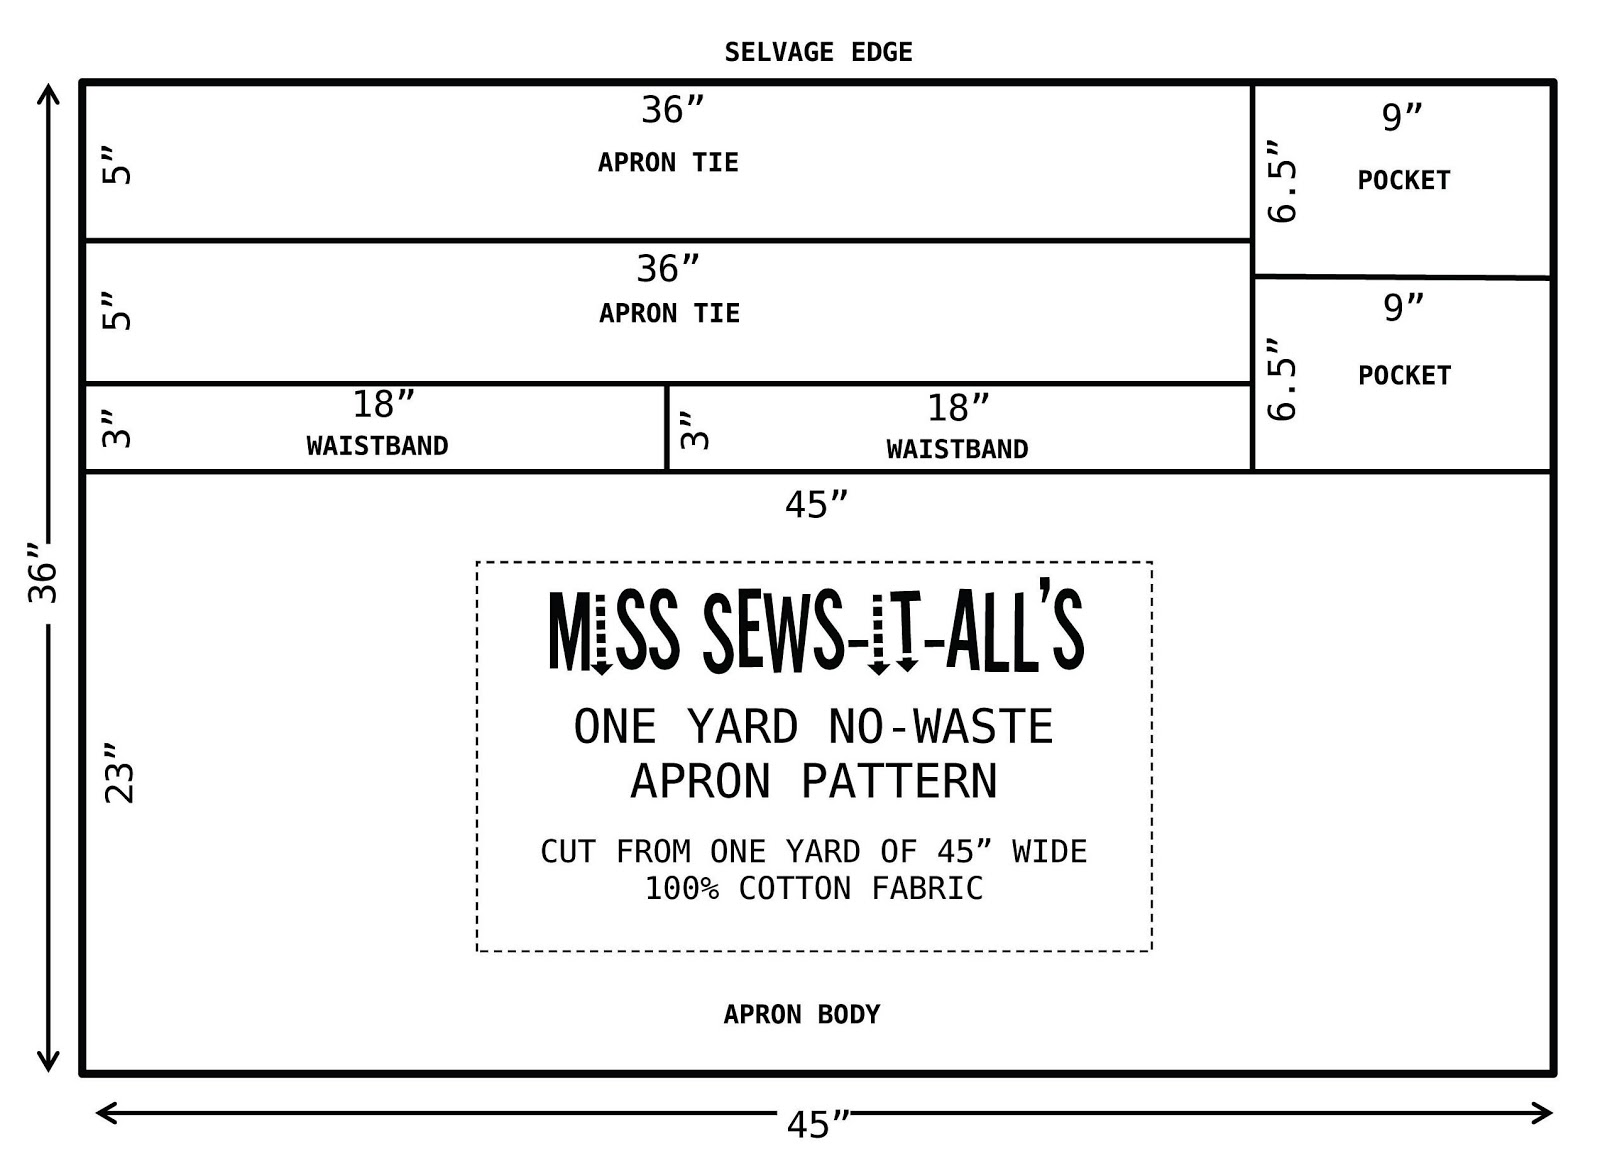 Worksheet One Yard Of Fabric Is How Many Inches miss sews it all one yard use apron pattern and tutorial note that if you fabric isnt quite 45 wide cut the ties waistband pieces first then see how muc